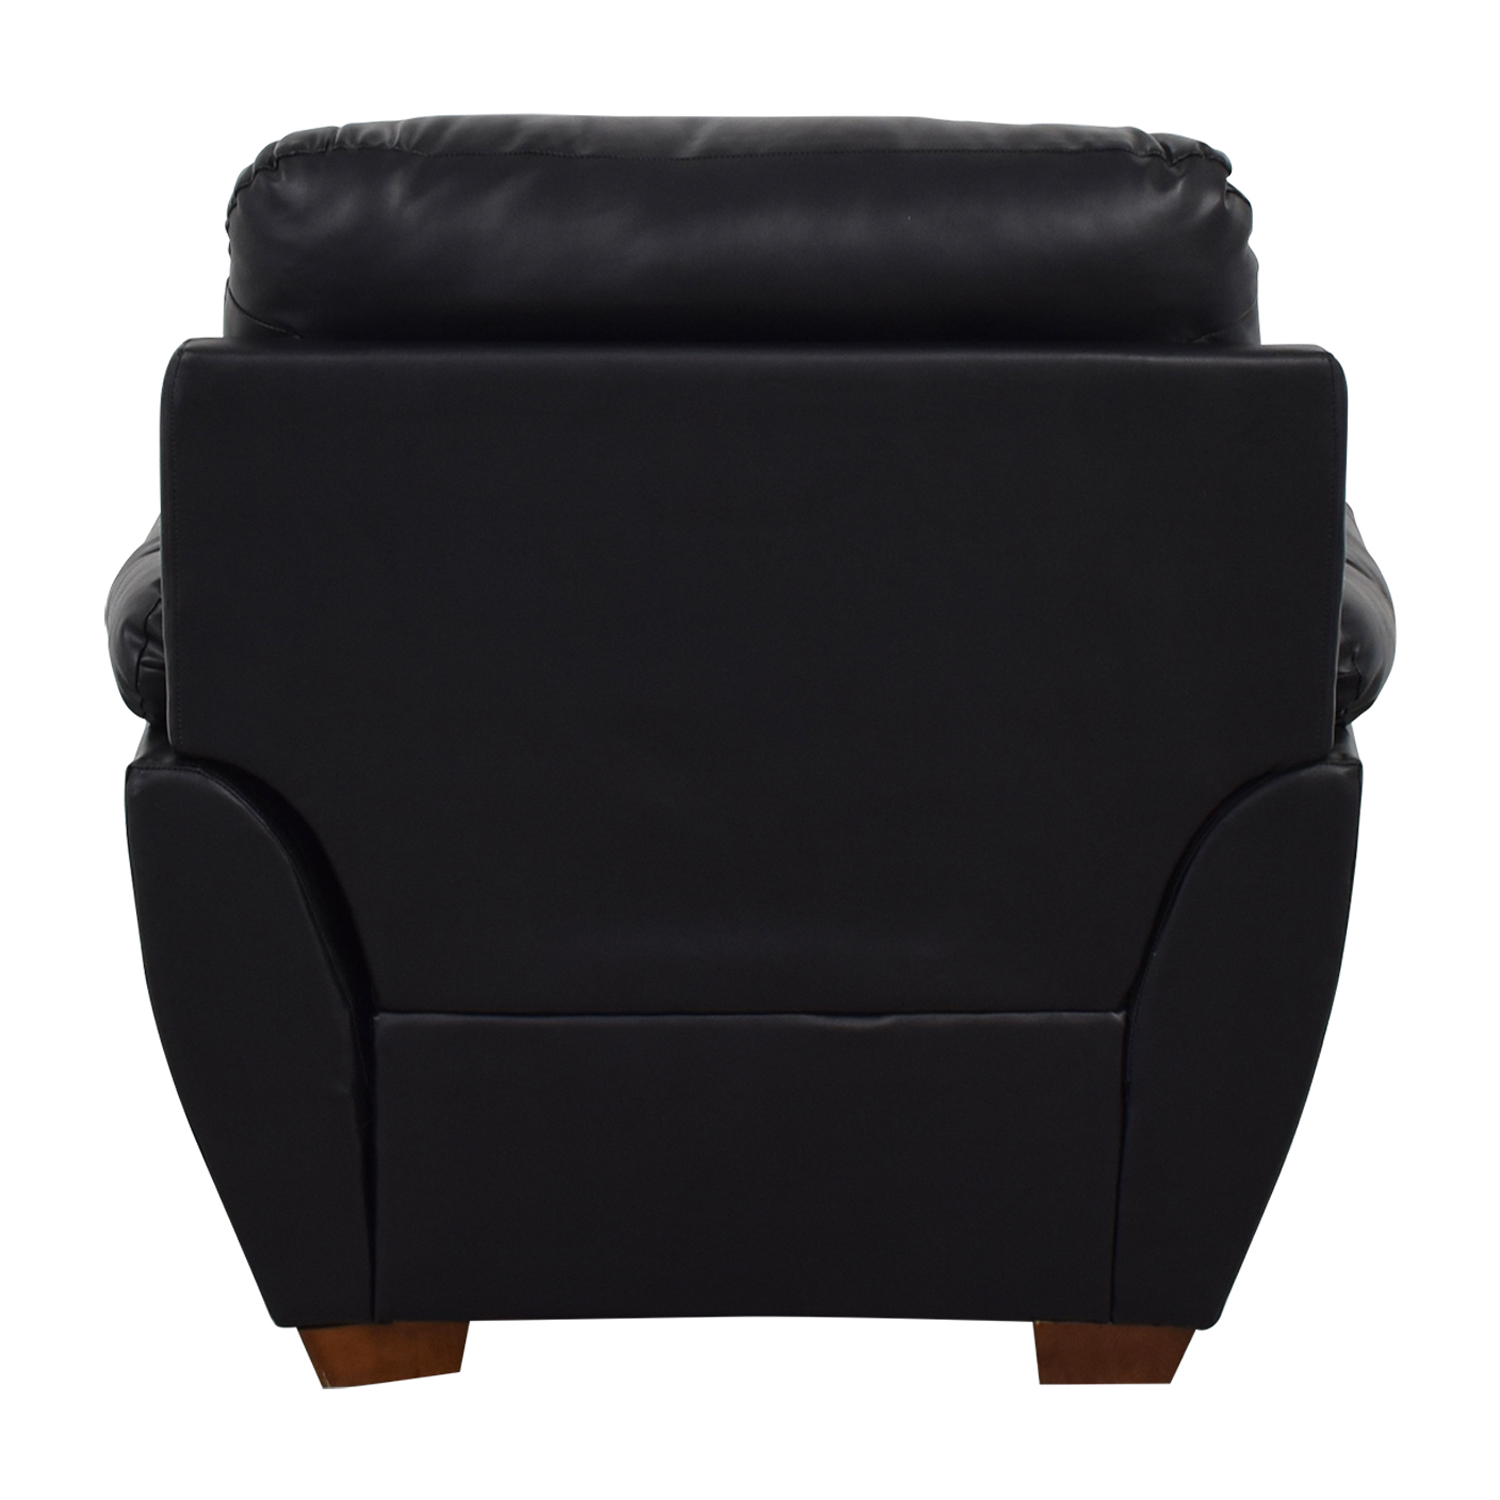 Black Accent Chairs Jennifer Furniture Wilton Black Accent Chair